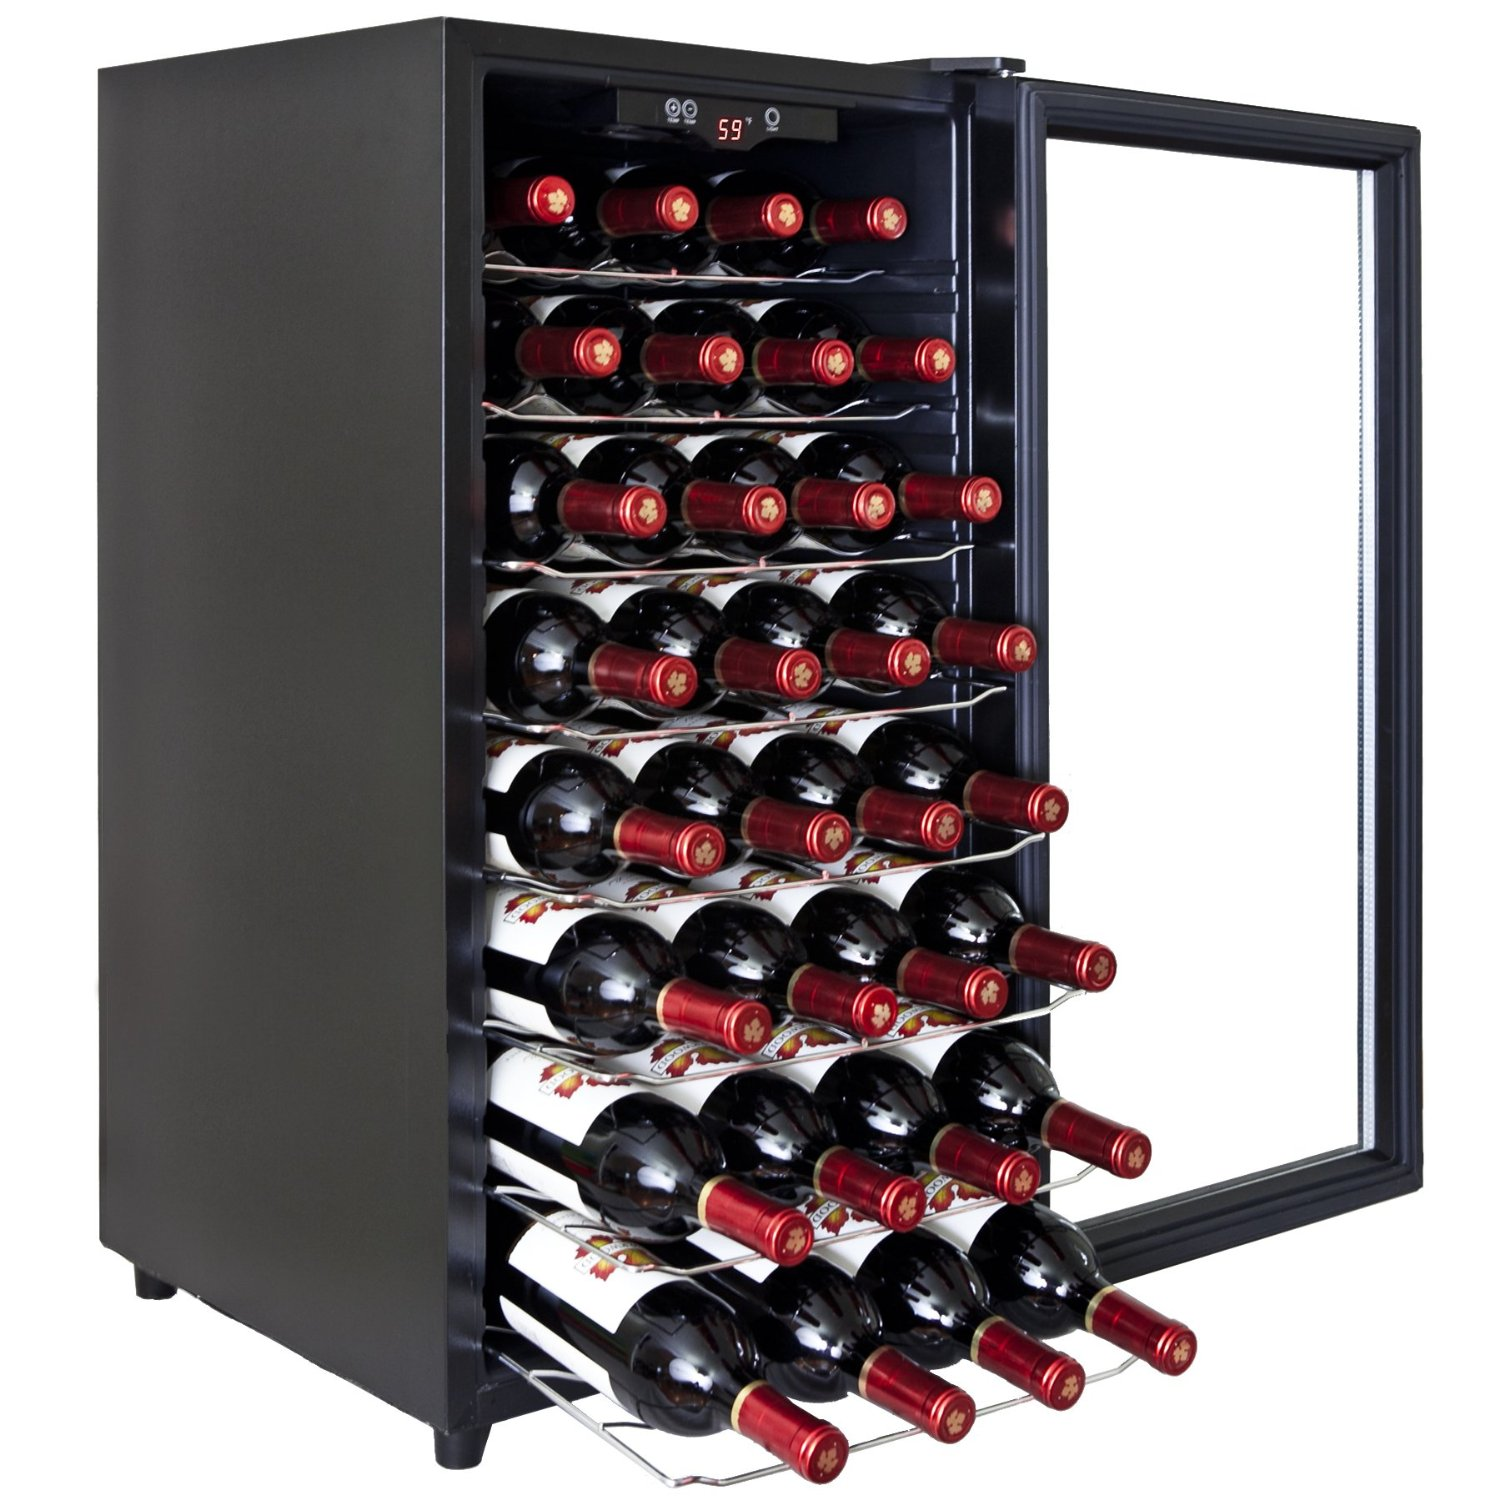 BTL-AZ-ea45ec-75 Electric Single Zone Wine Cooler-32 Bottle